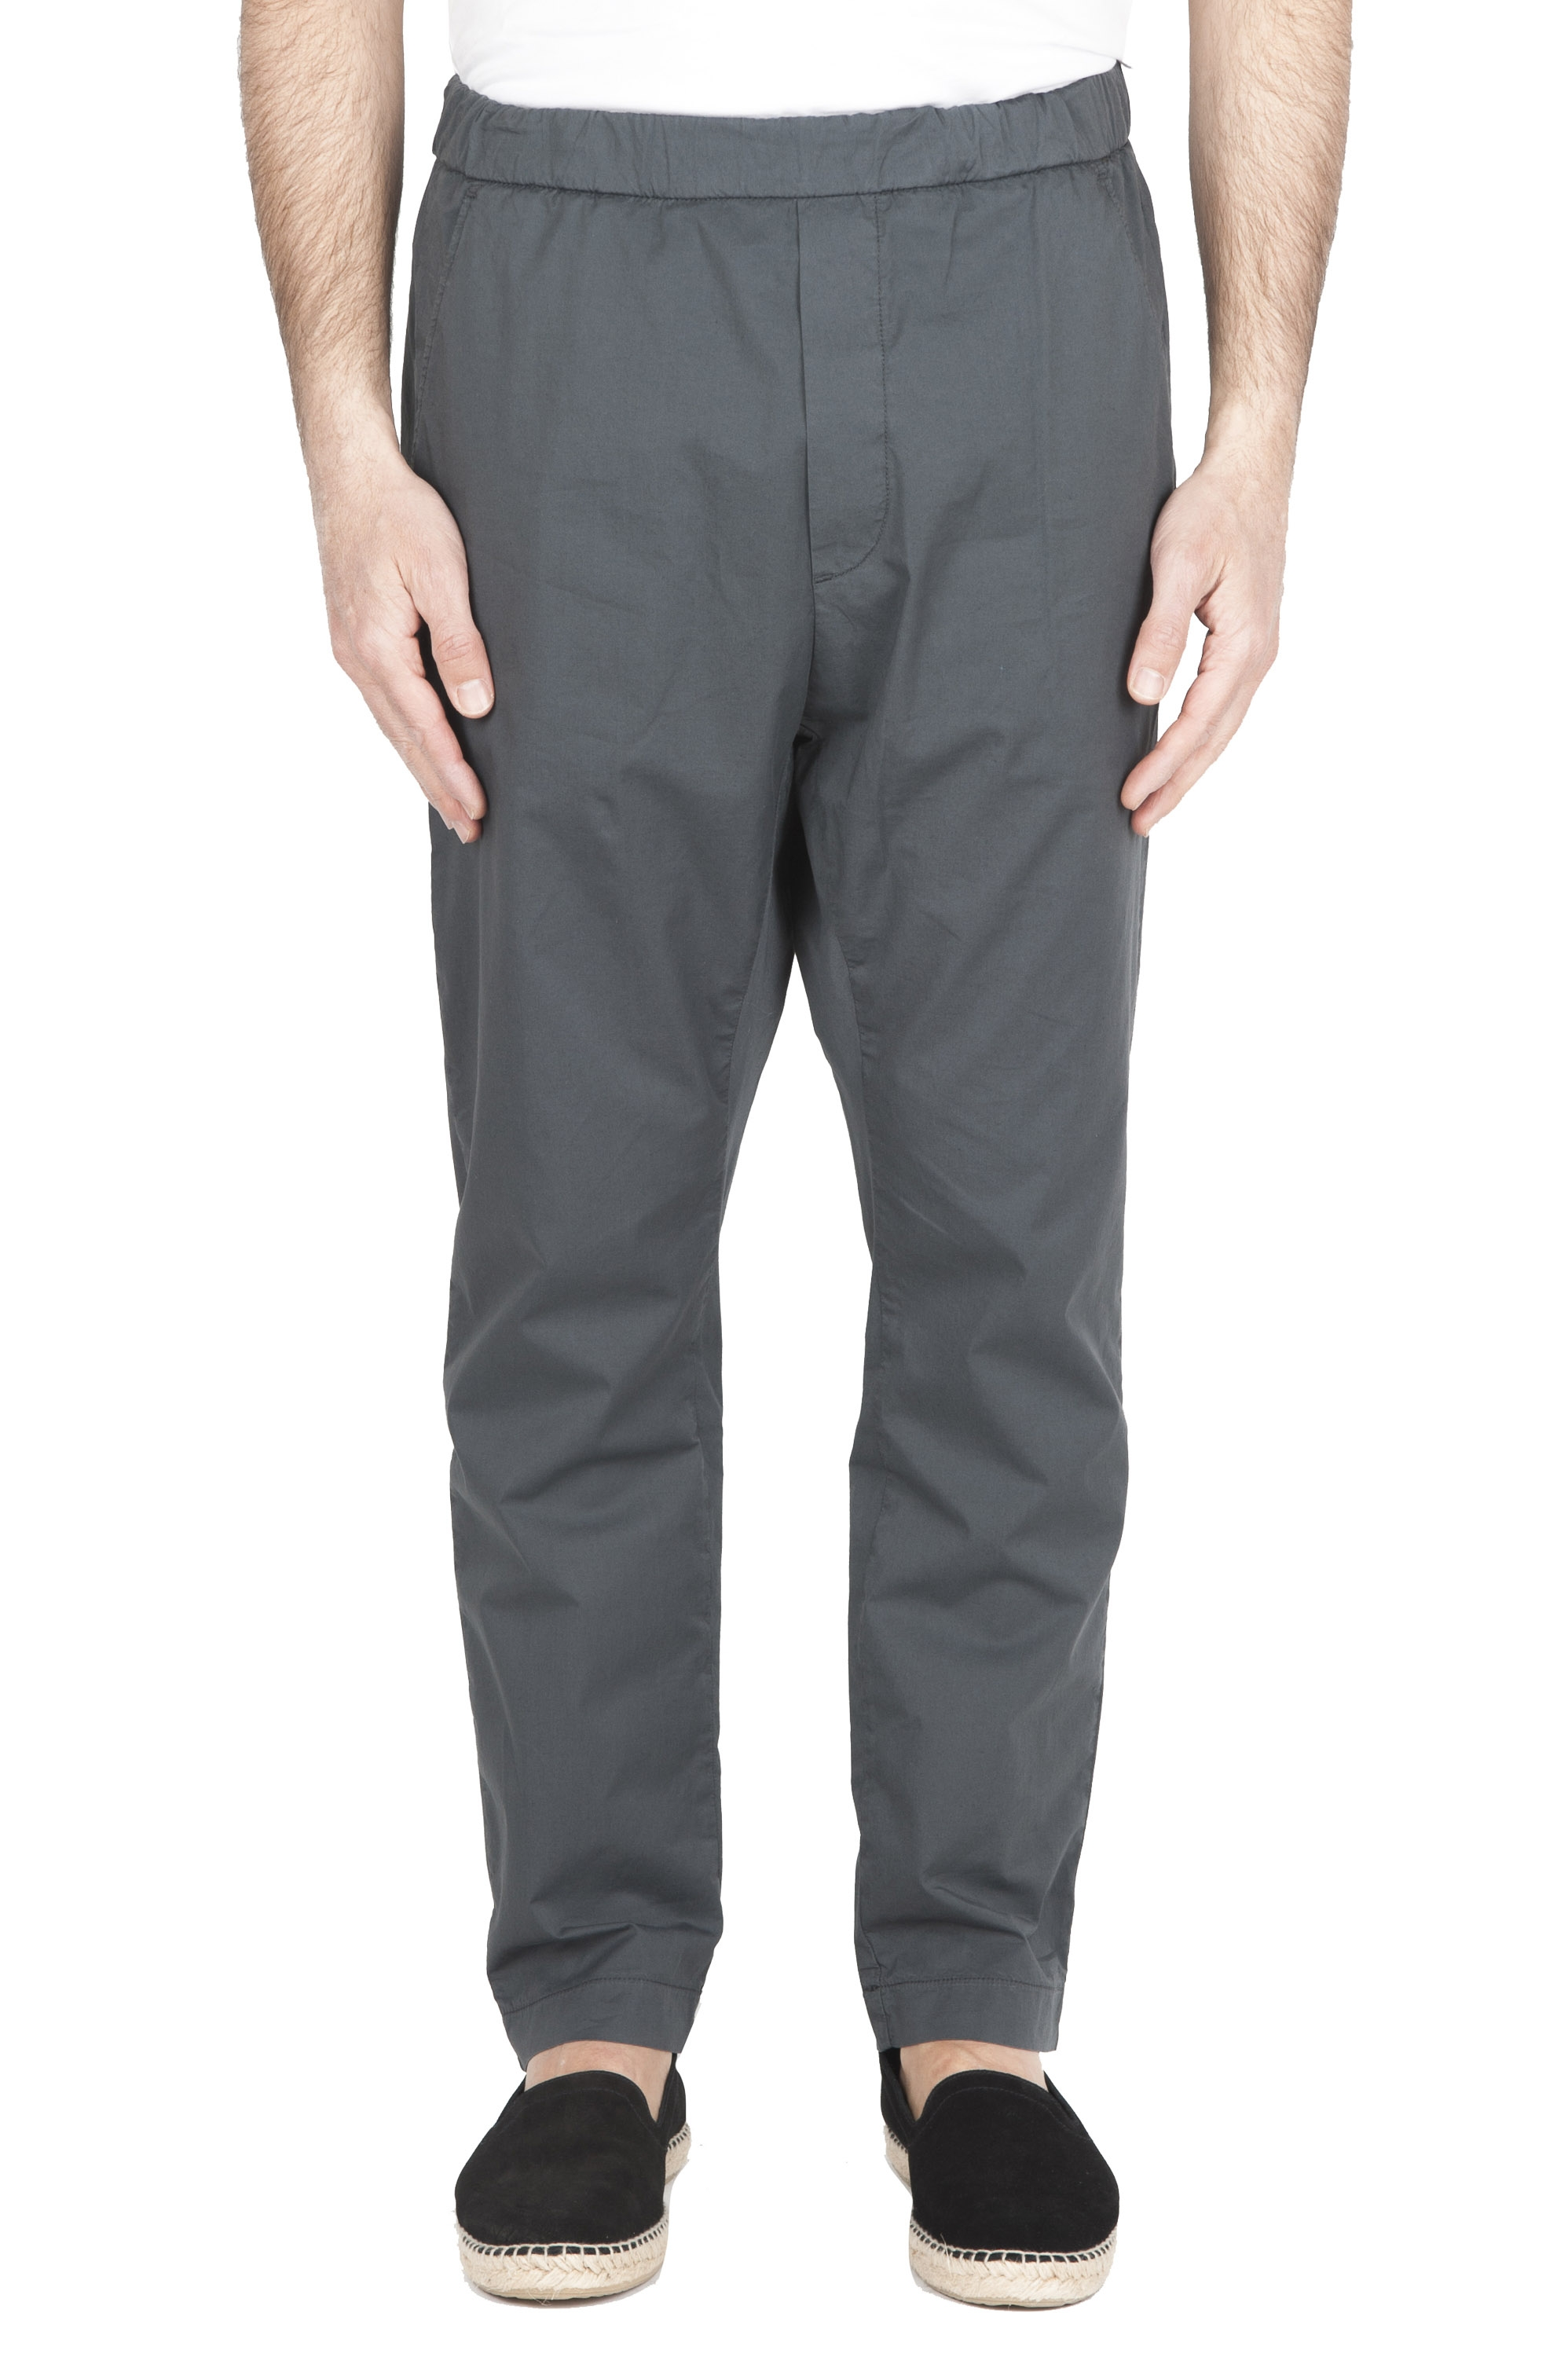 SBU 01782 Ultra-light jolly pants in grey stretch cotton 01